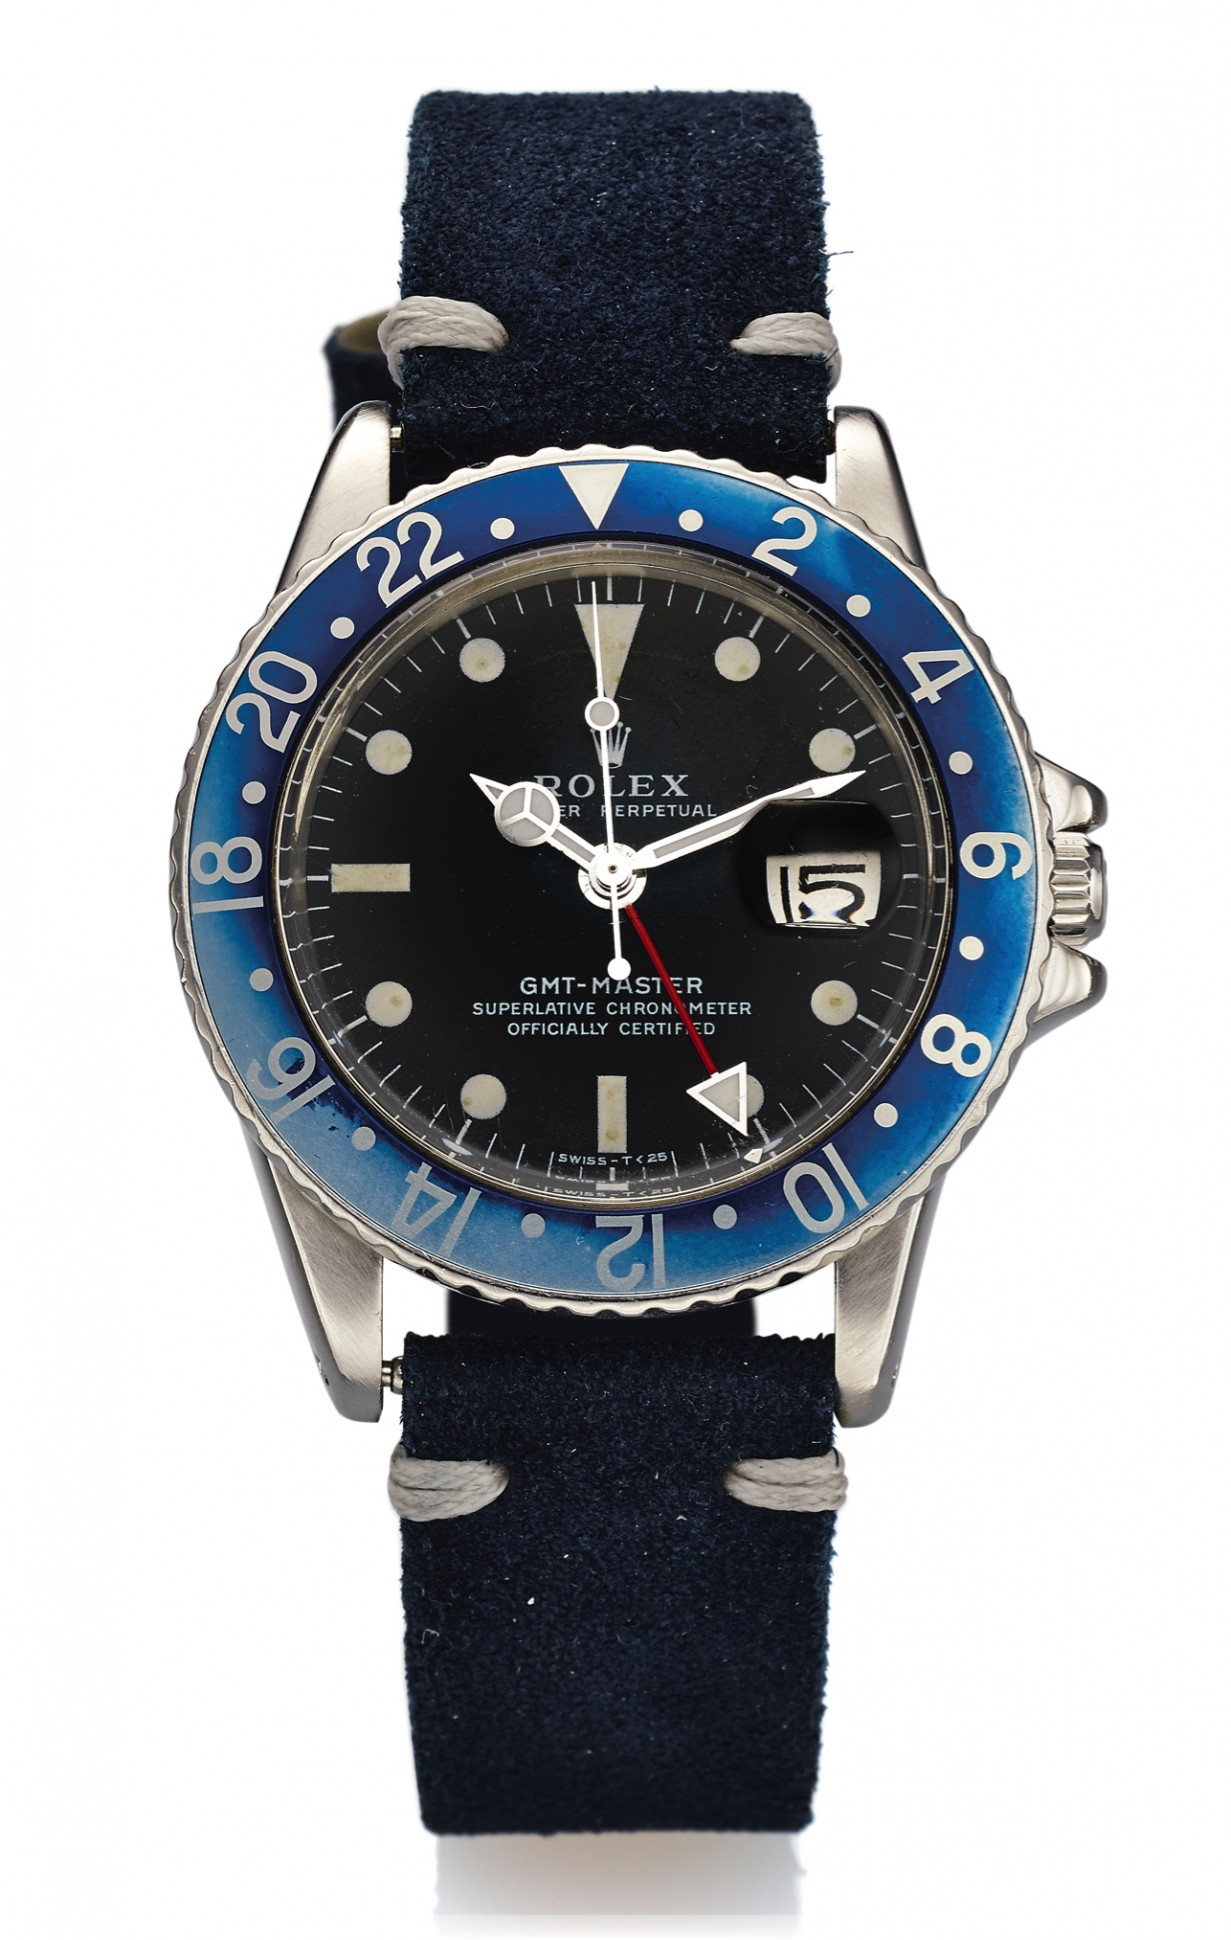 AN ULTRA-RARE ROLEX REPLICA GMT MASTER TO BE AUCTIONED OFF